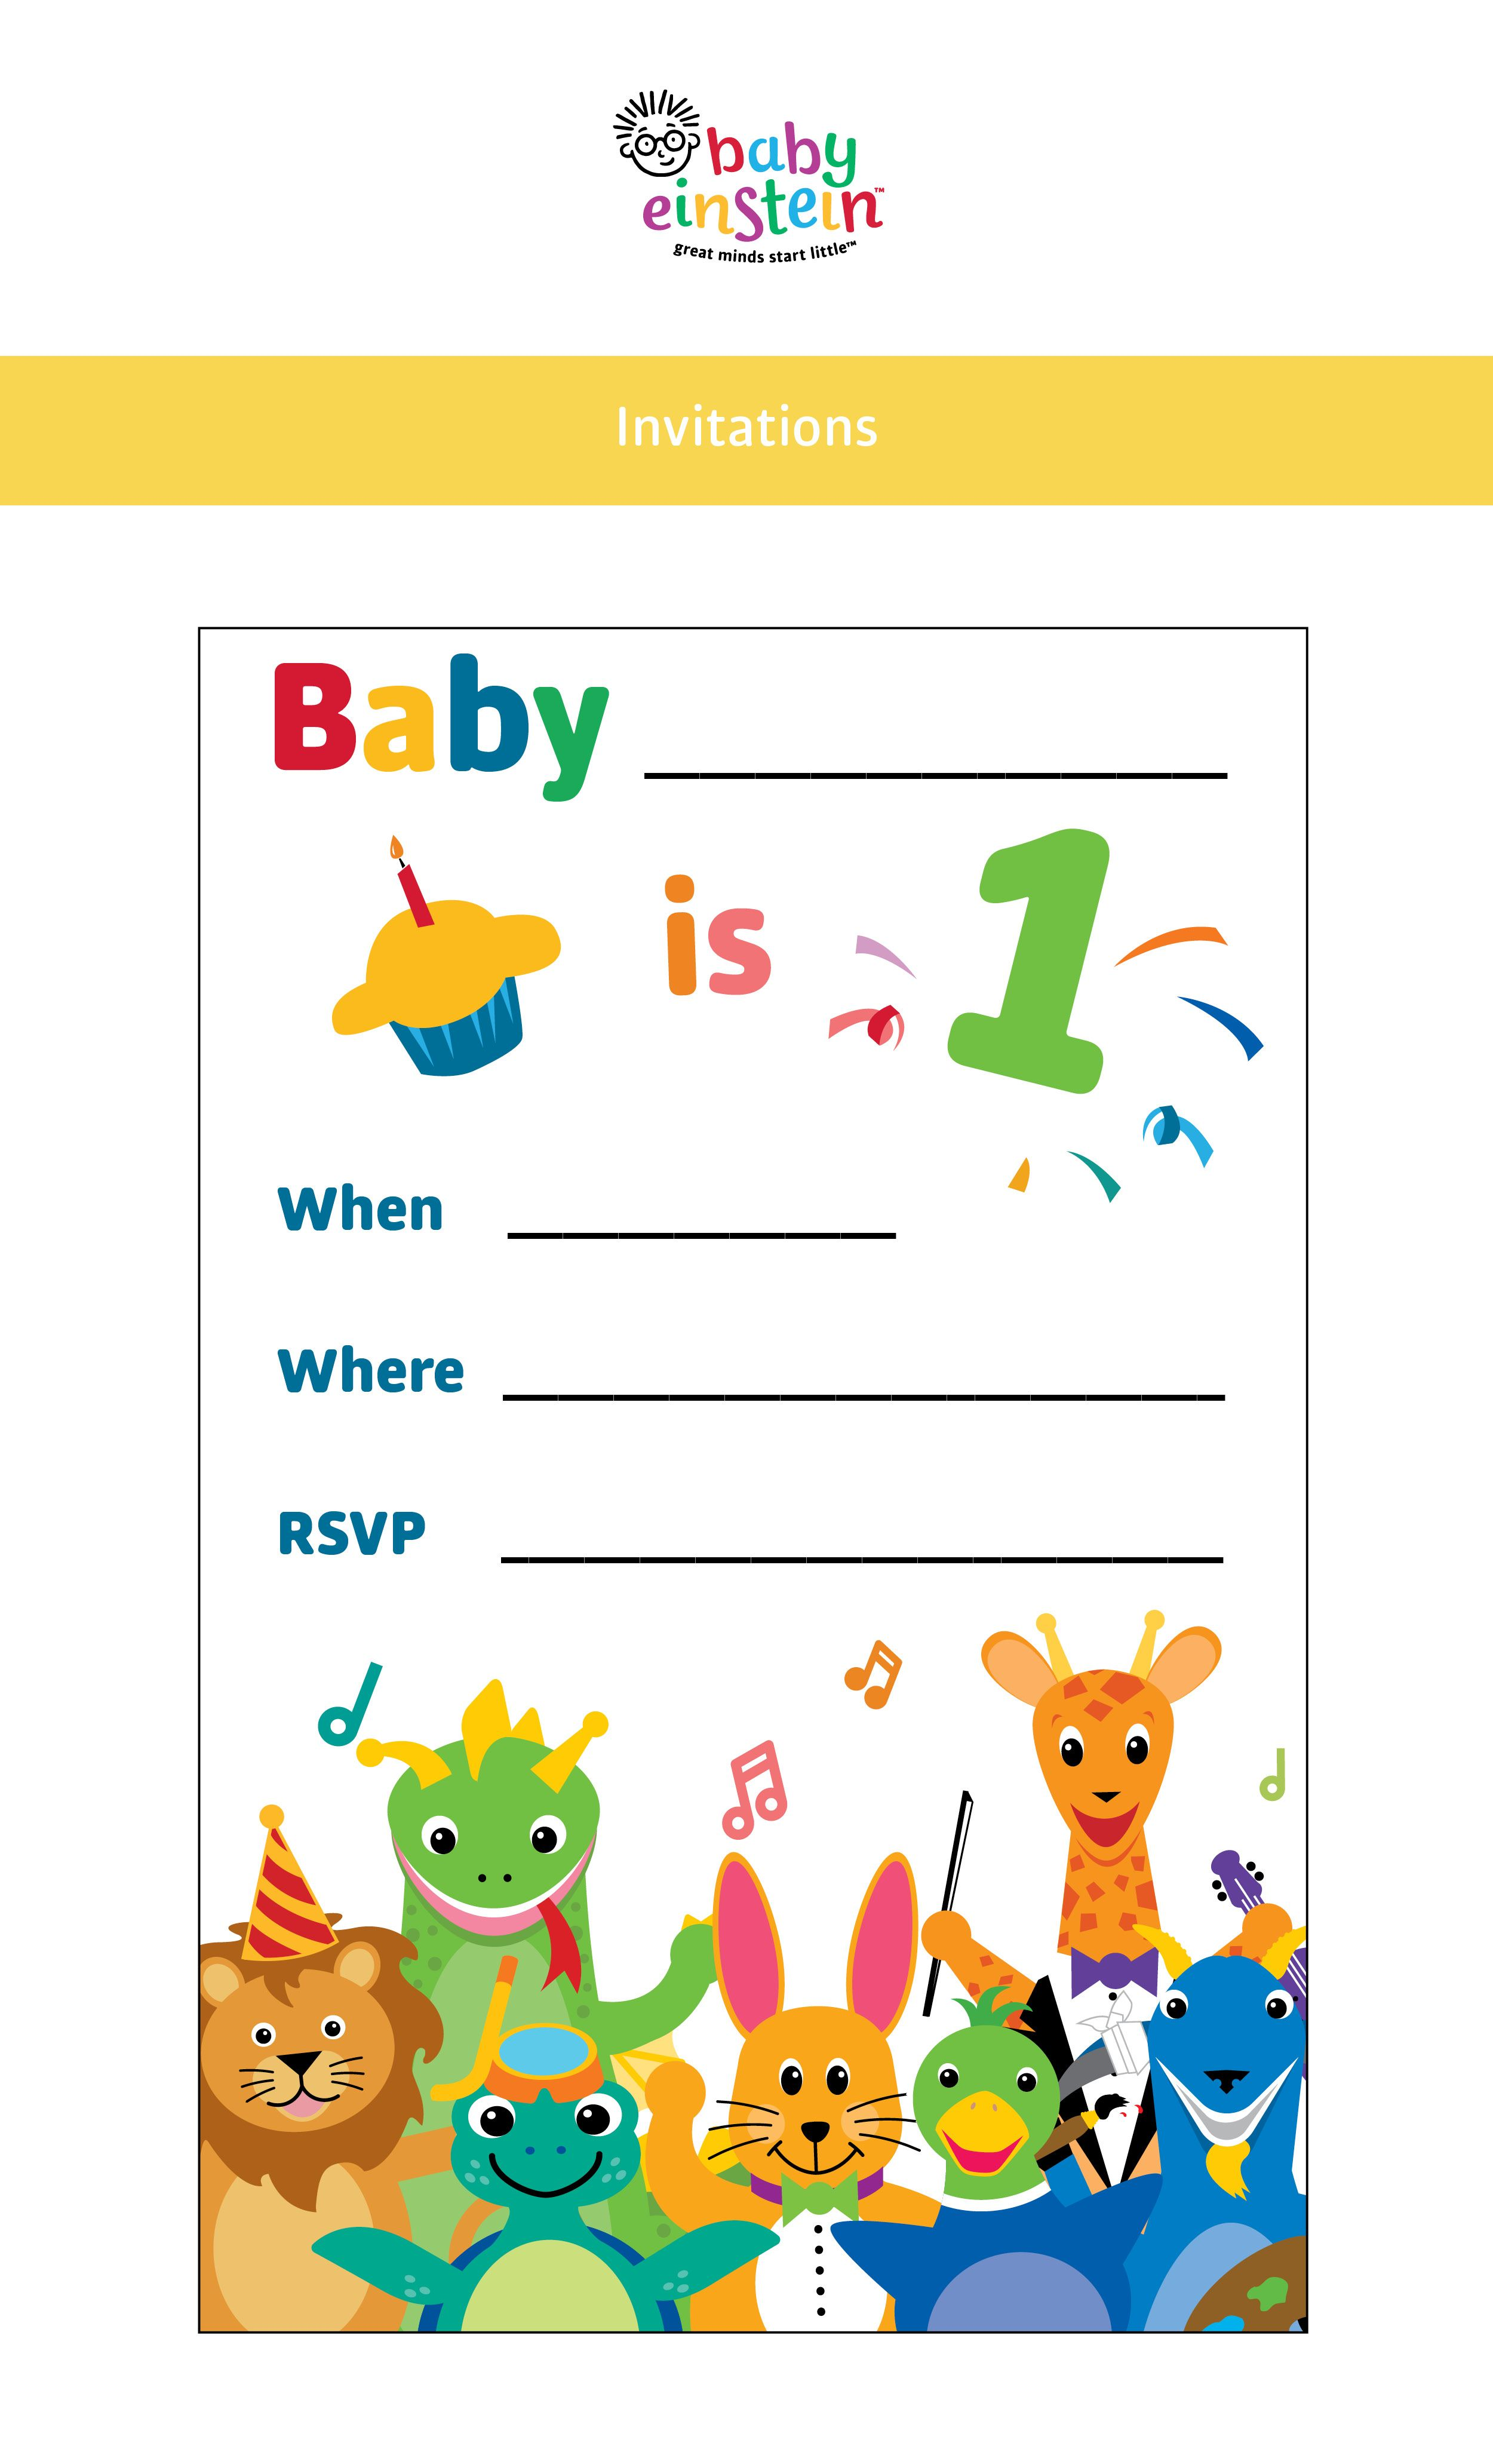 Adorable Baby Einstein Party Invitations Customize With Baby S Party Details Get Printables